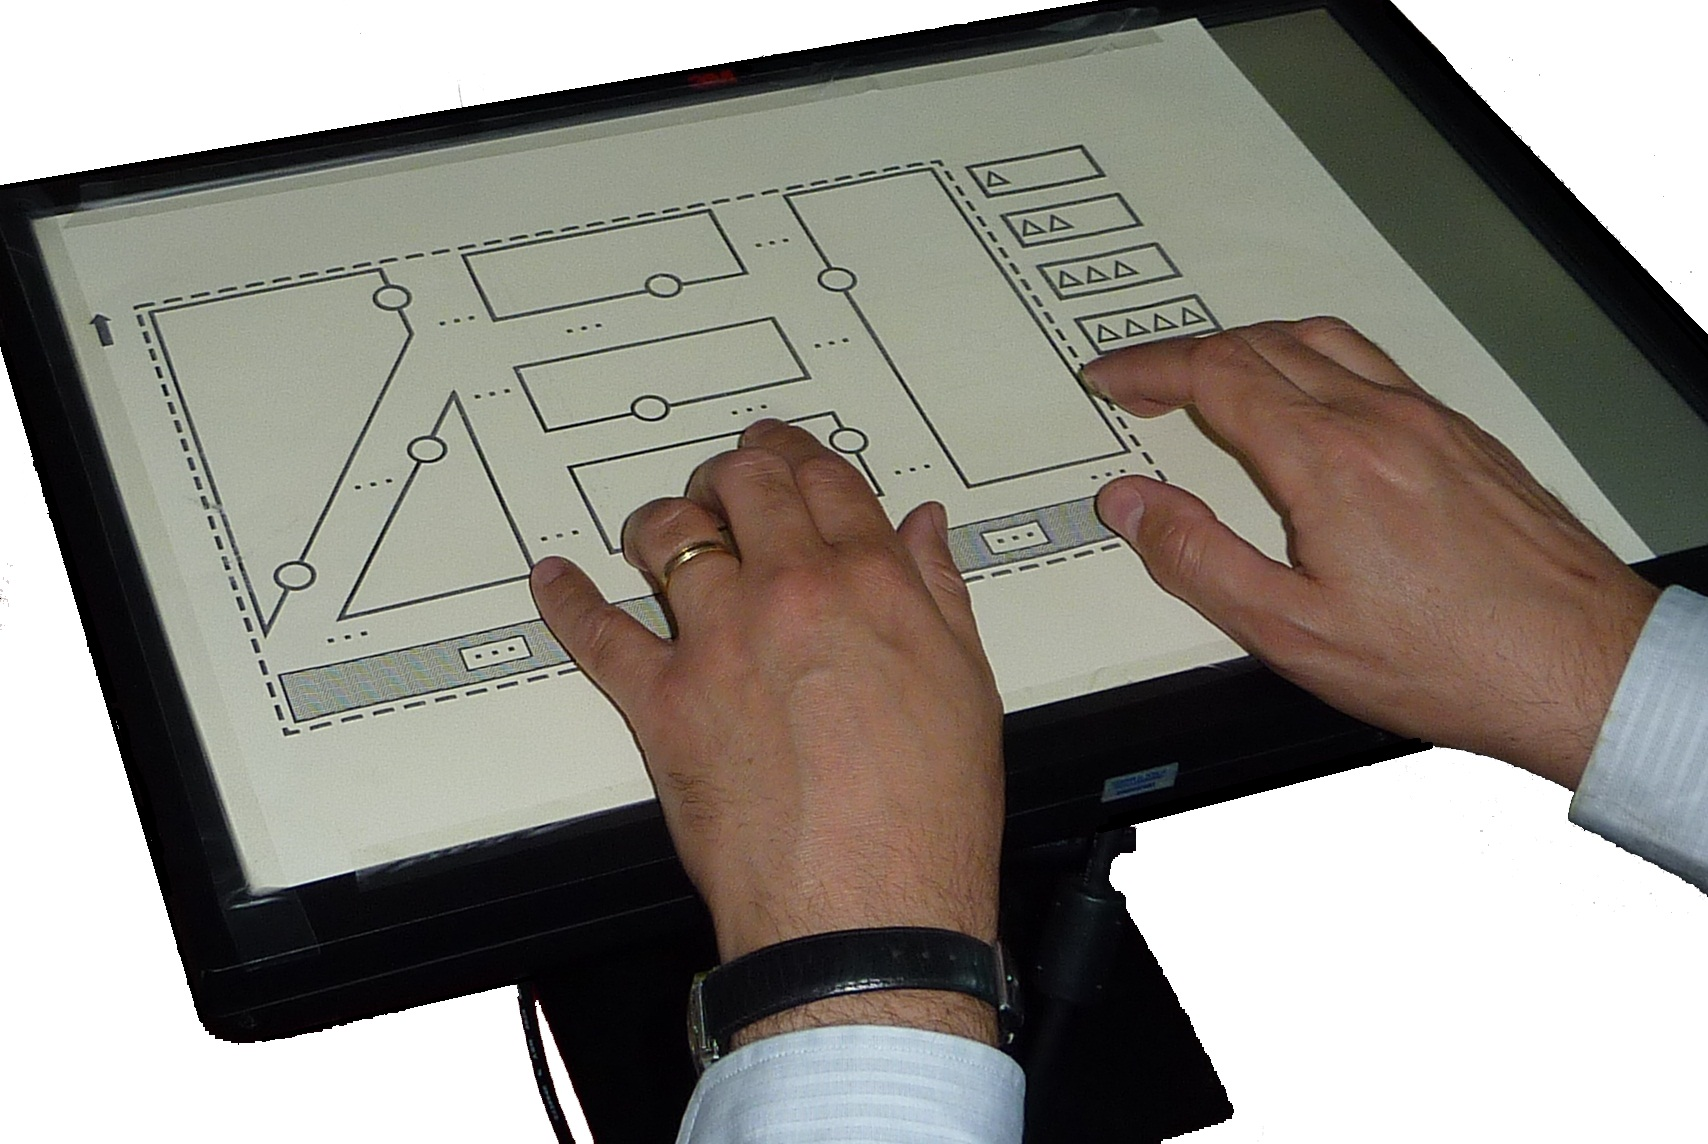 accessible interactive map: multi-touch screen with map overlay